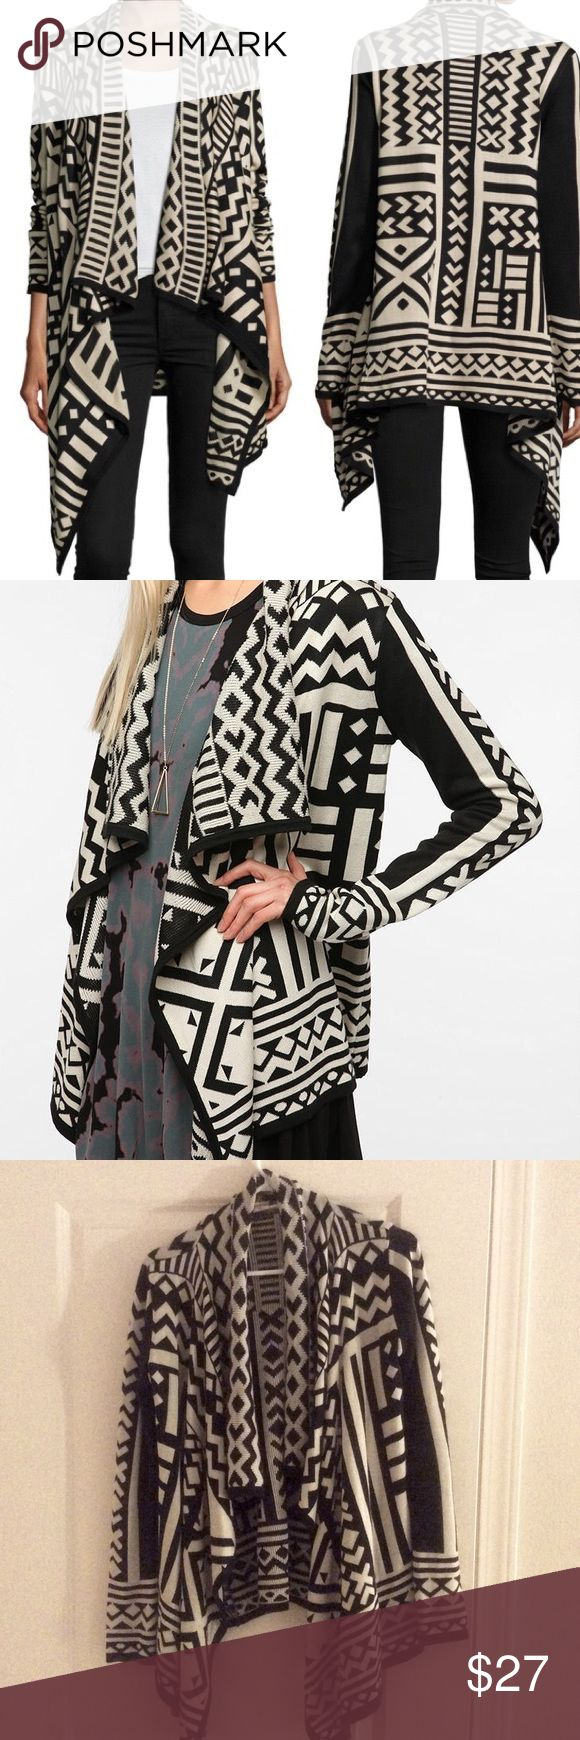 Urban Outfitters Black White Tribal Print Sweater Awesome tribal print black and white open-front sweater. Long sleeves, soft, warm, great condition! Staring at Stars Sweaters